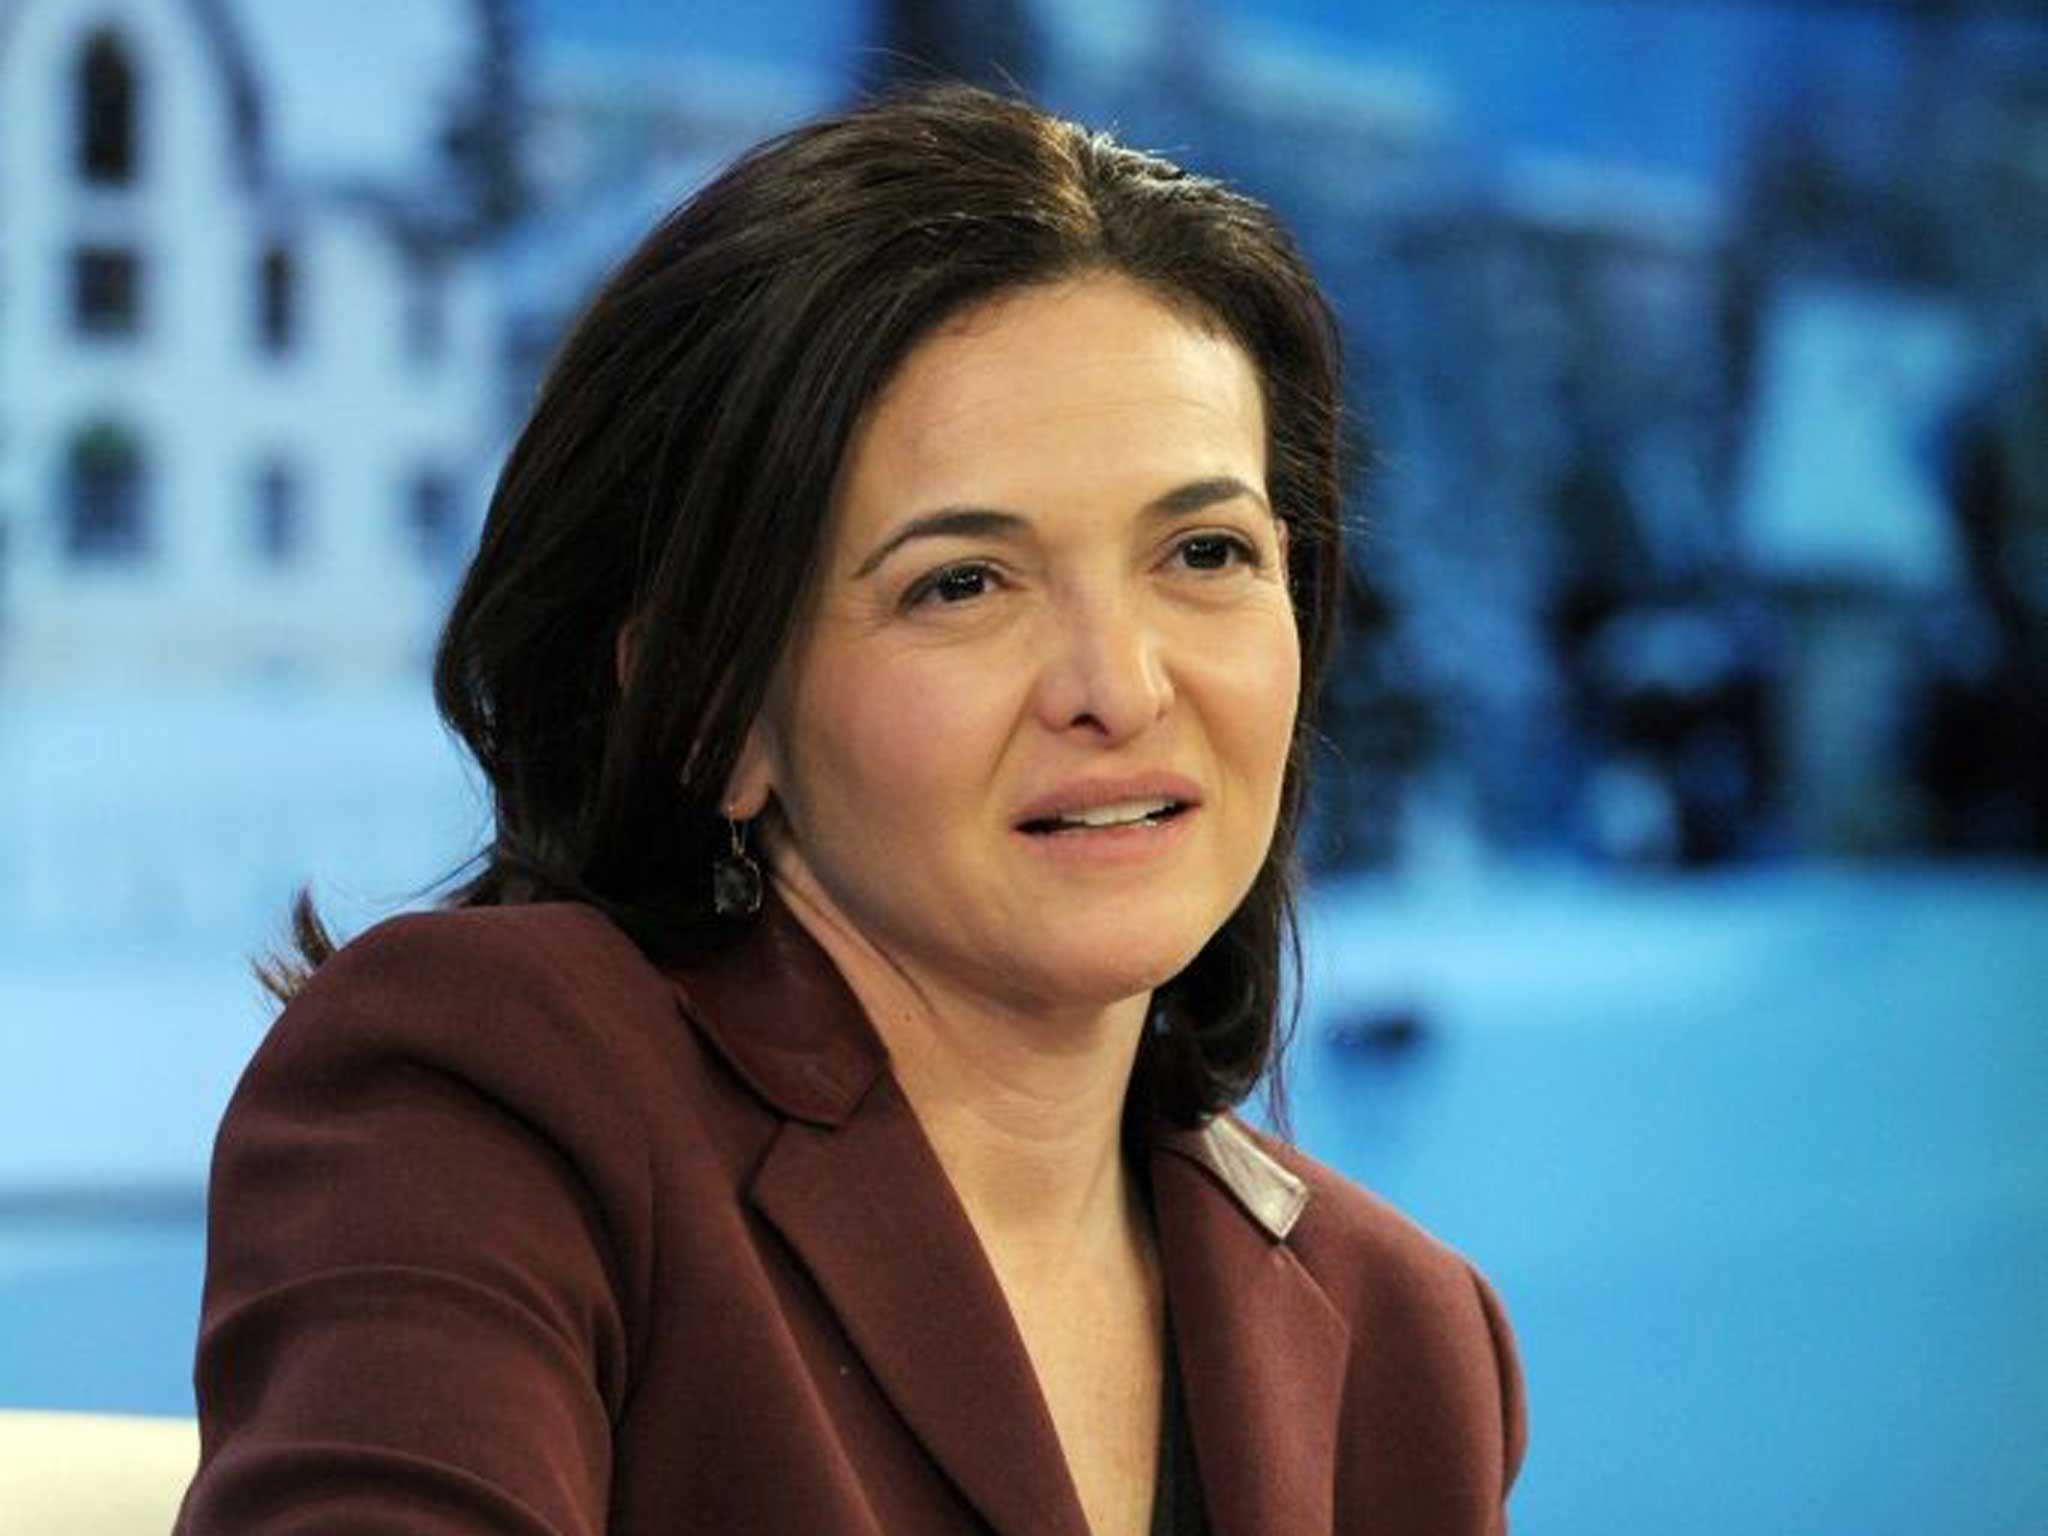 Facebook's Sheryl Sandberg speaks publicly about her husband's death for first time in moving speech   People   News   The Independent